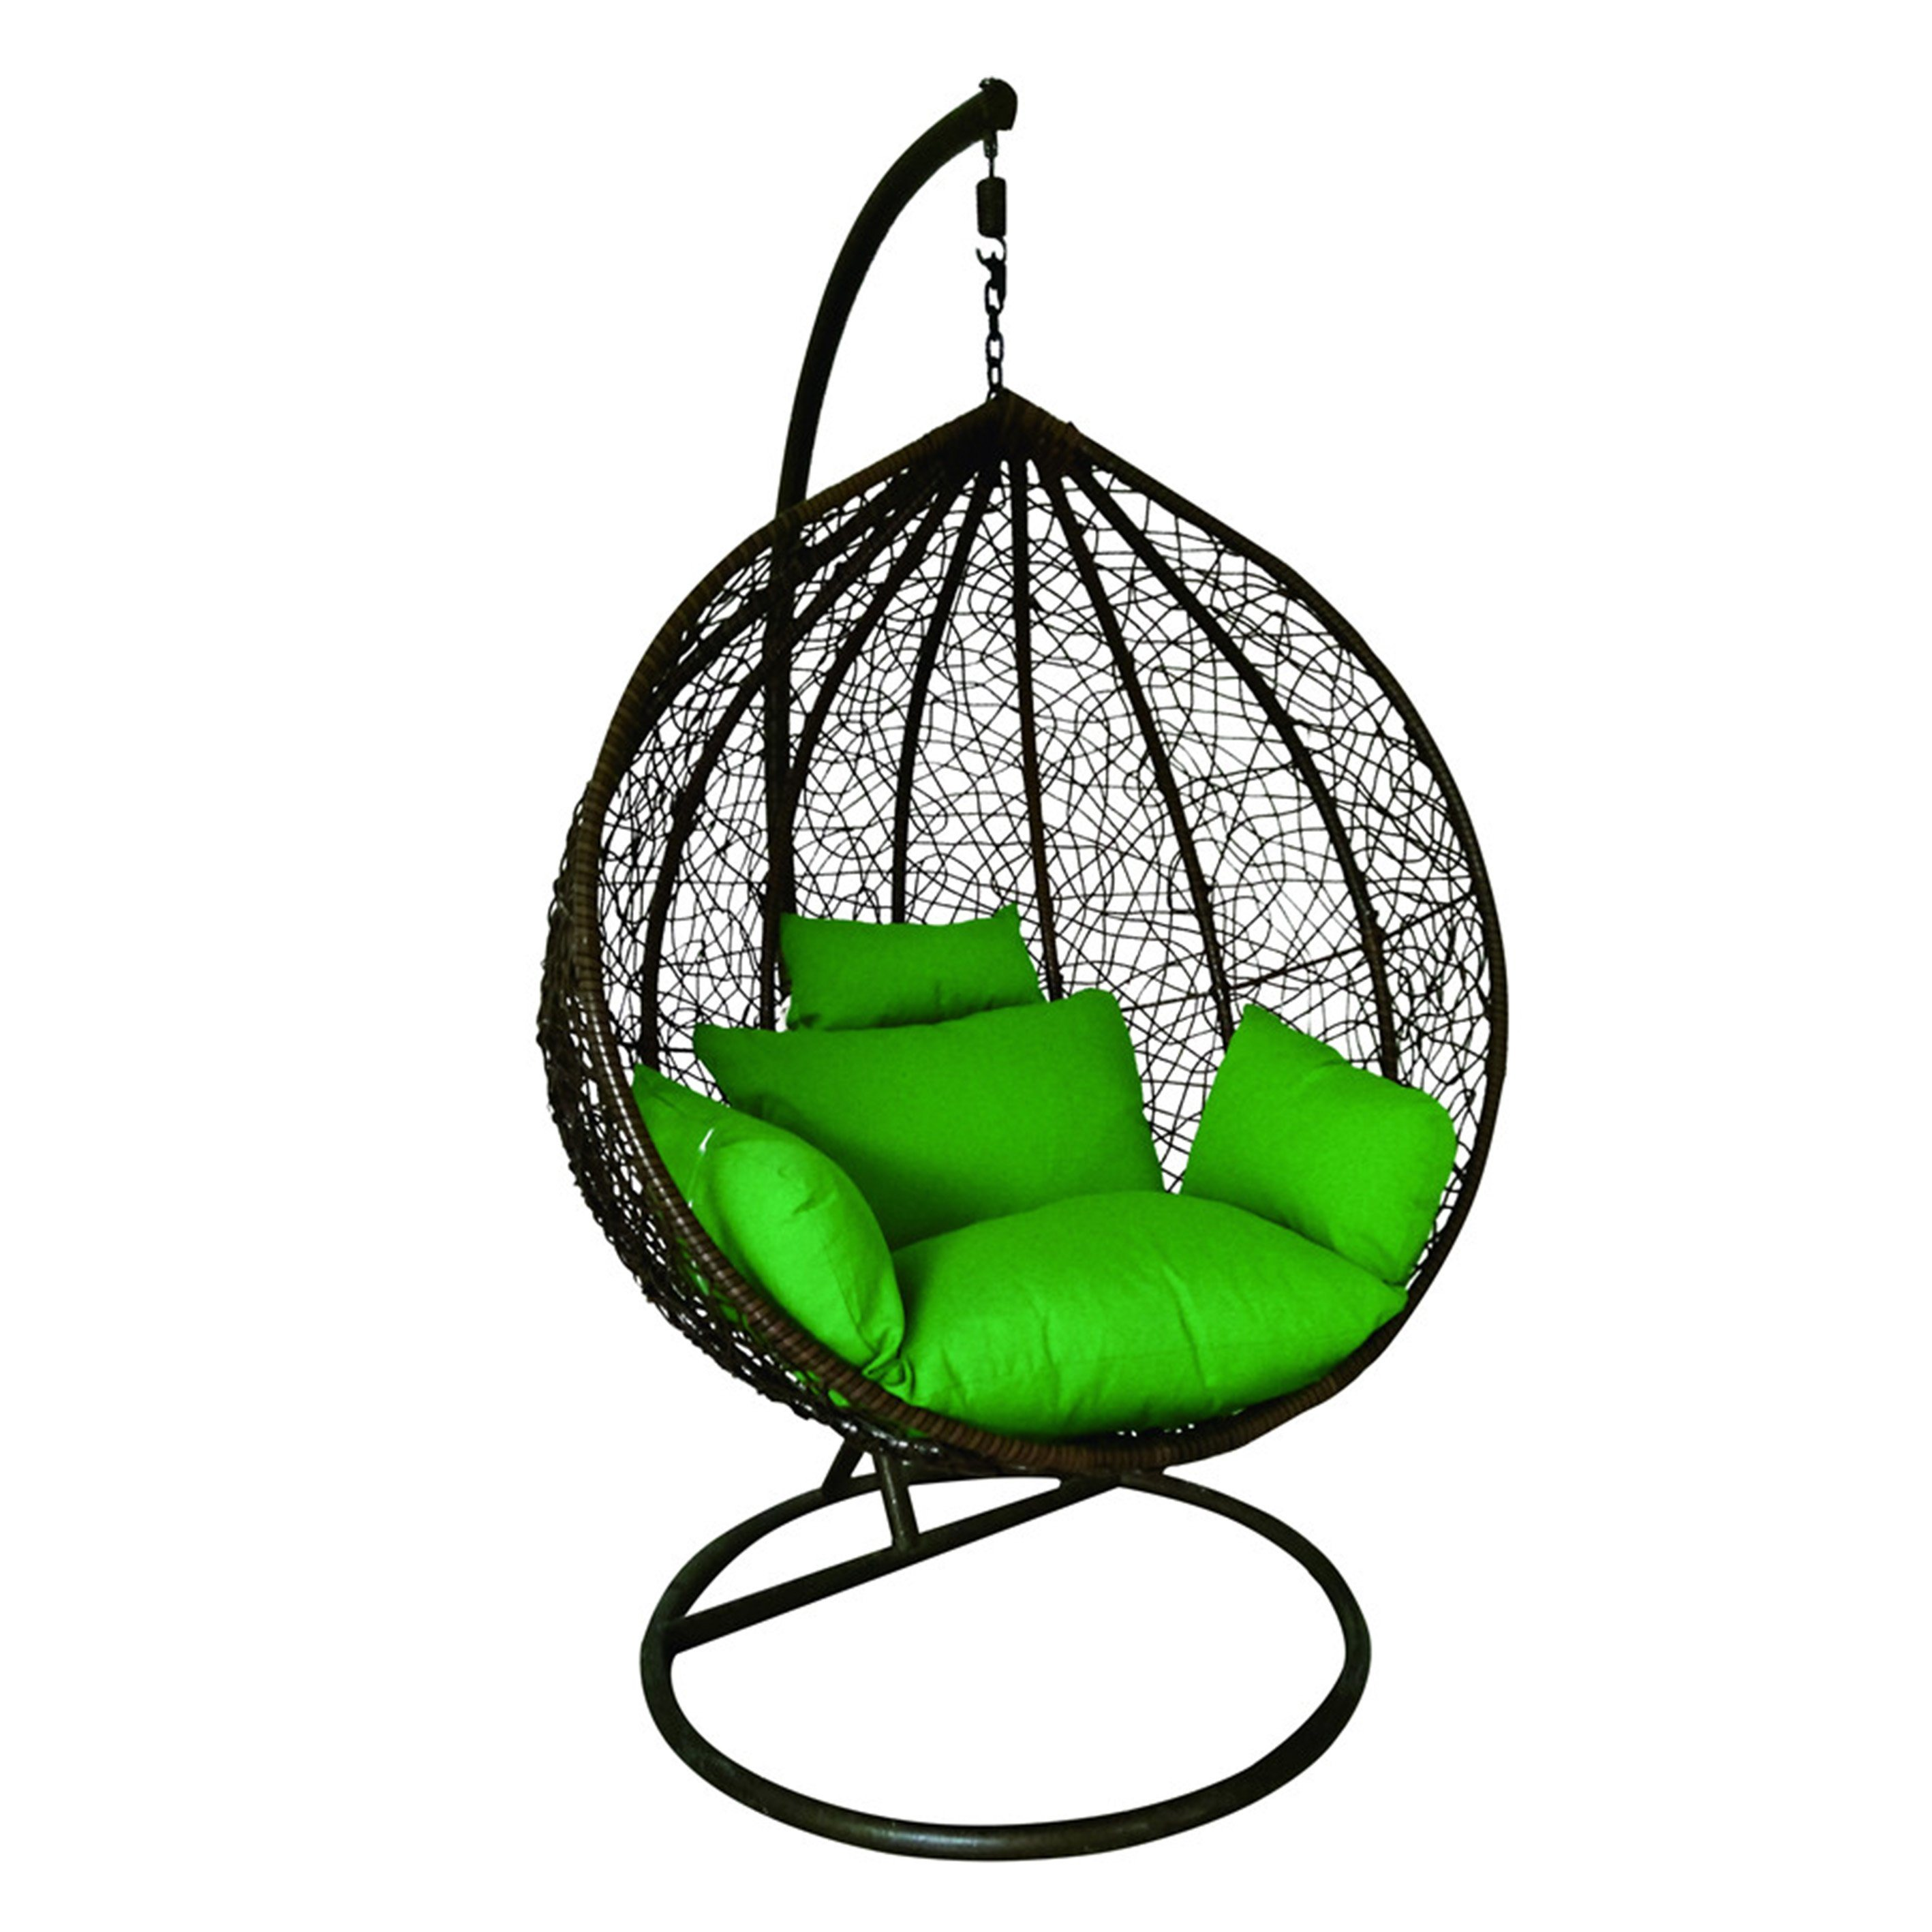 Mid Century Rattan Chair, China Cheap Price Indoor Outdoor Patio Rattan Wicker Hanging Egg Swing Chair With Metal Stand China Garden Egg Chair Outdoor Wicker Chairs